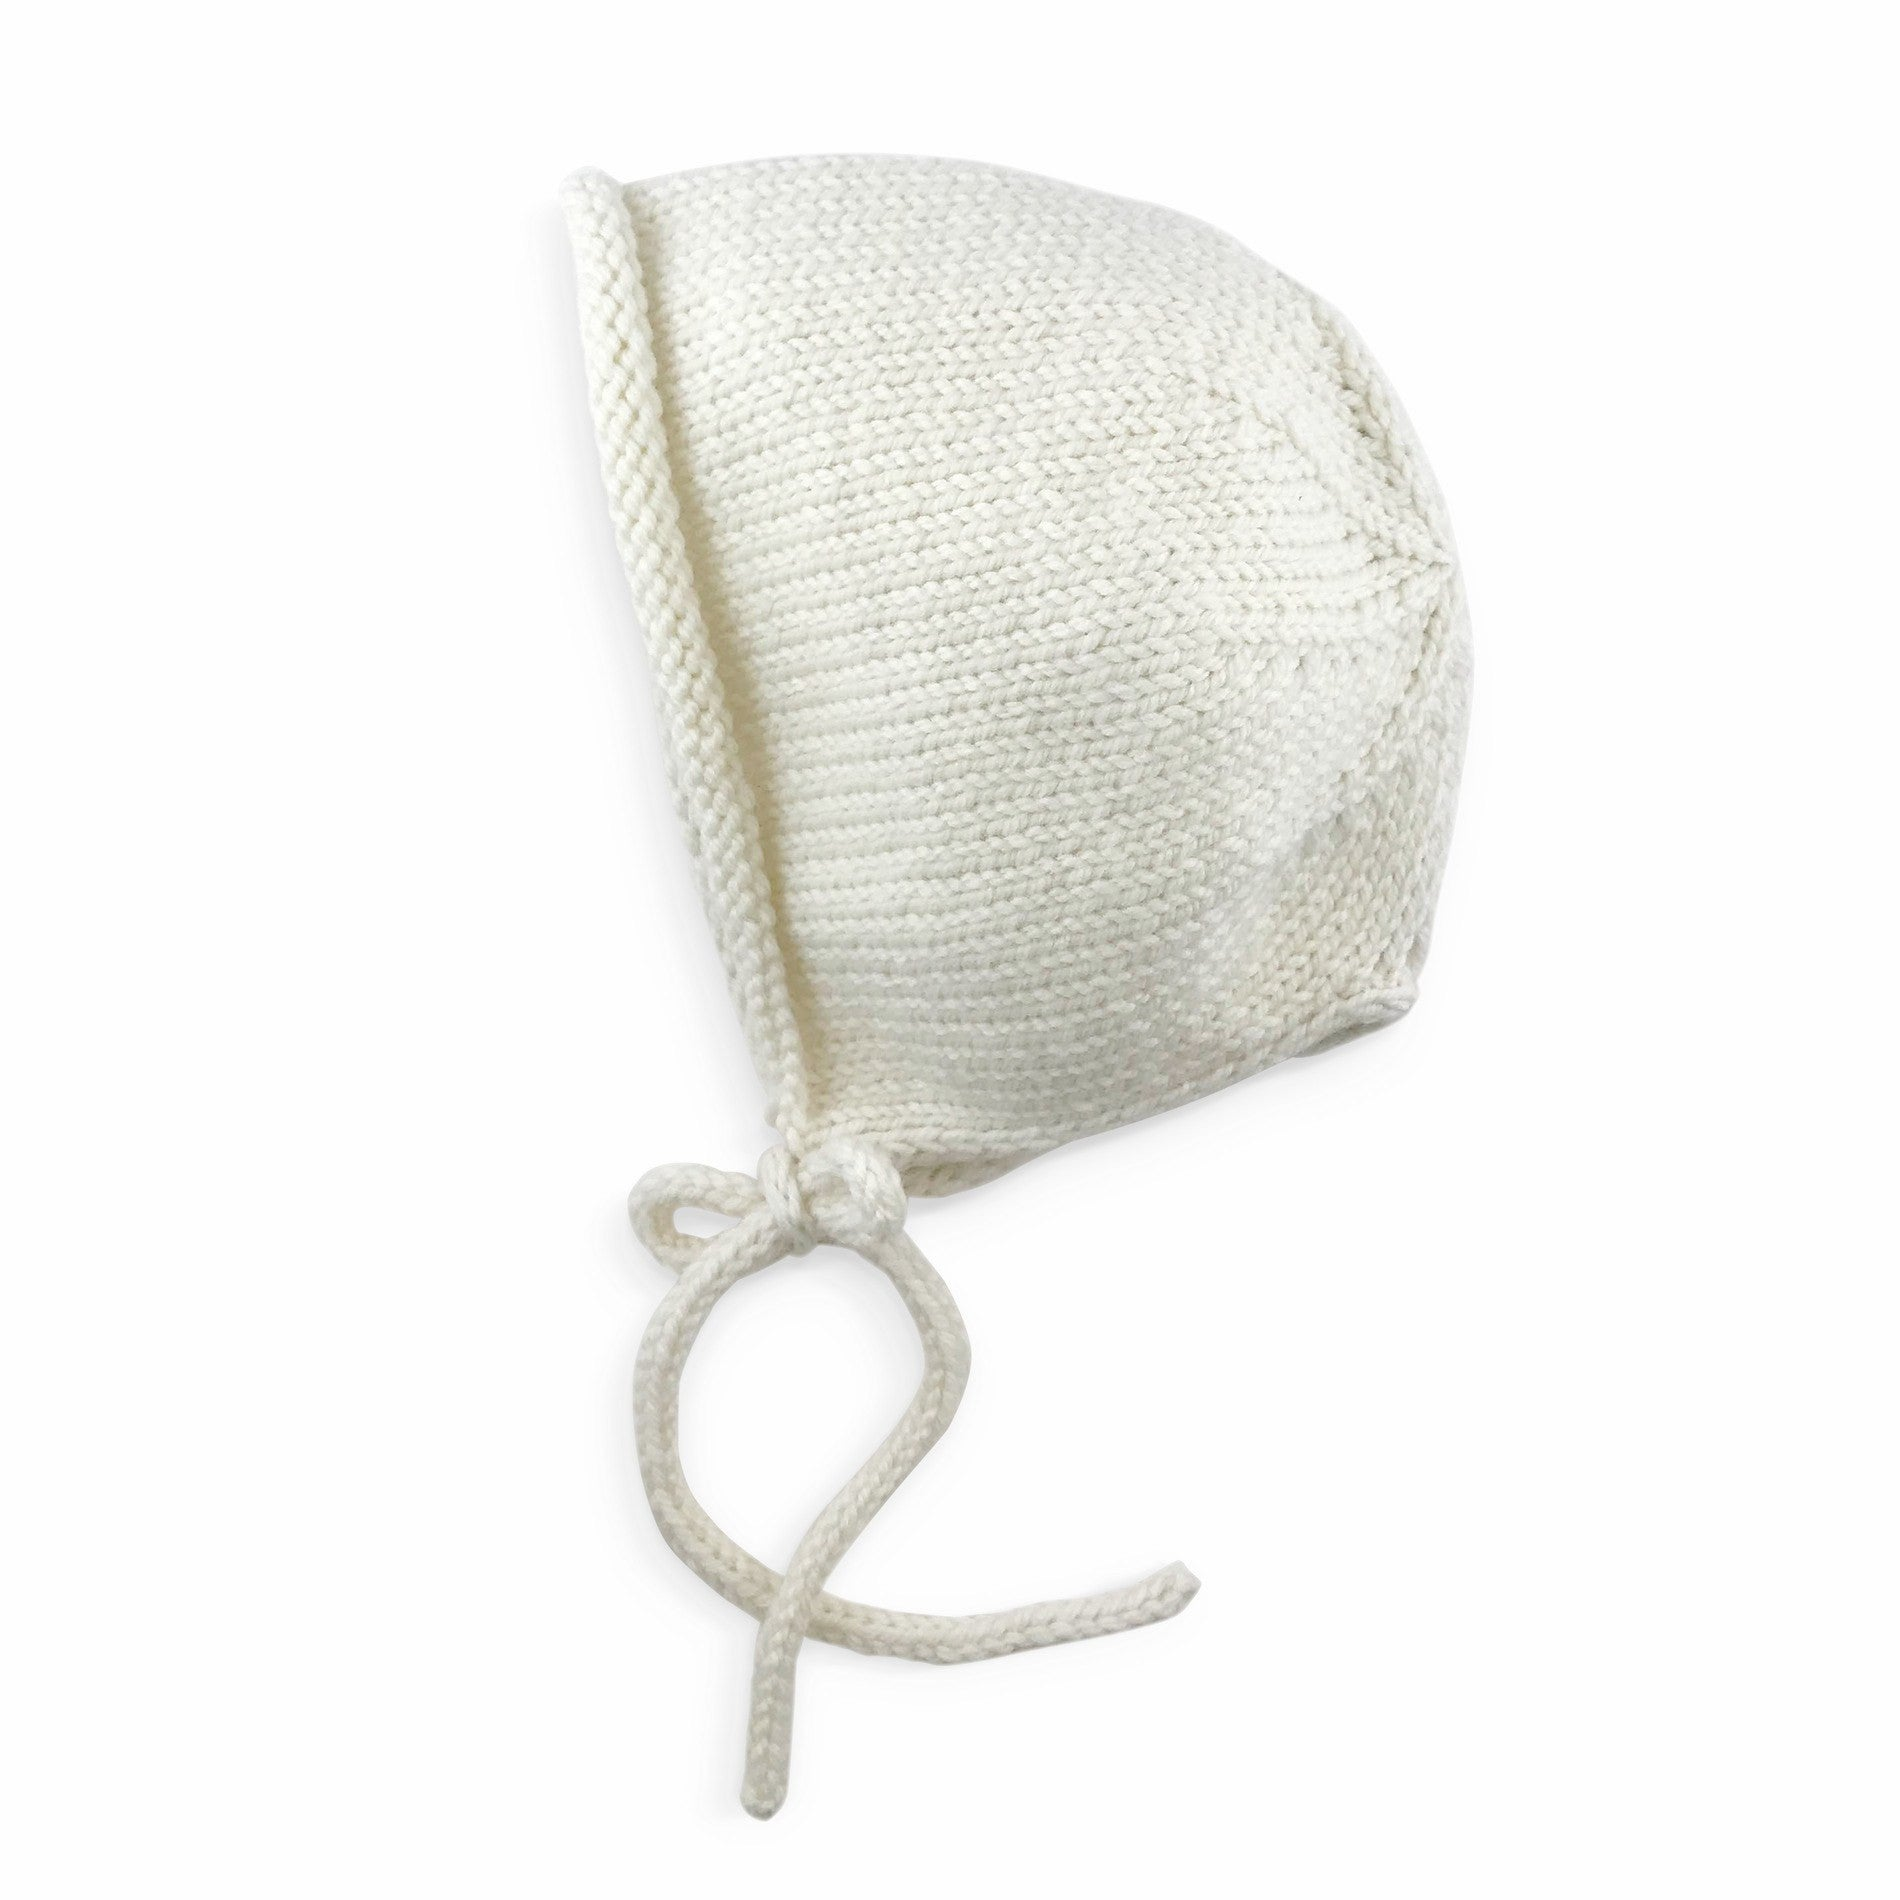 fawn&forest Knit Brynlee Bonnet - Egret - fawn&forest